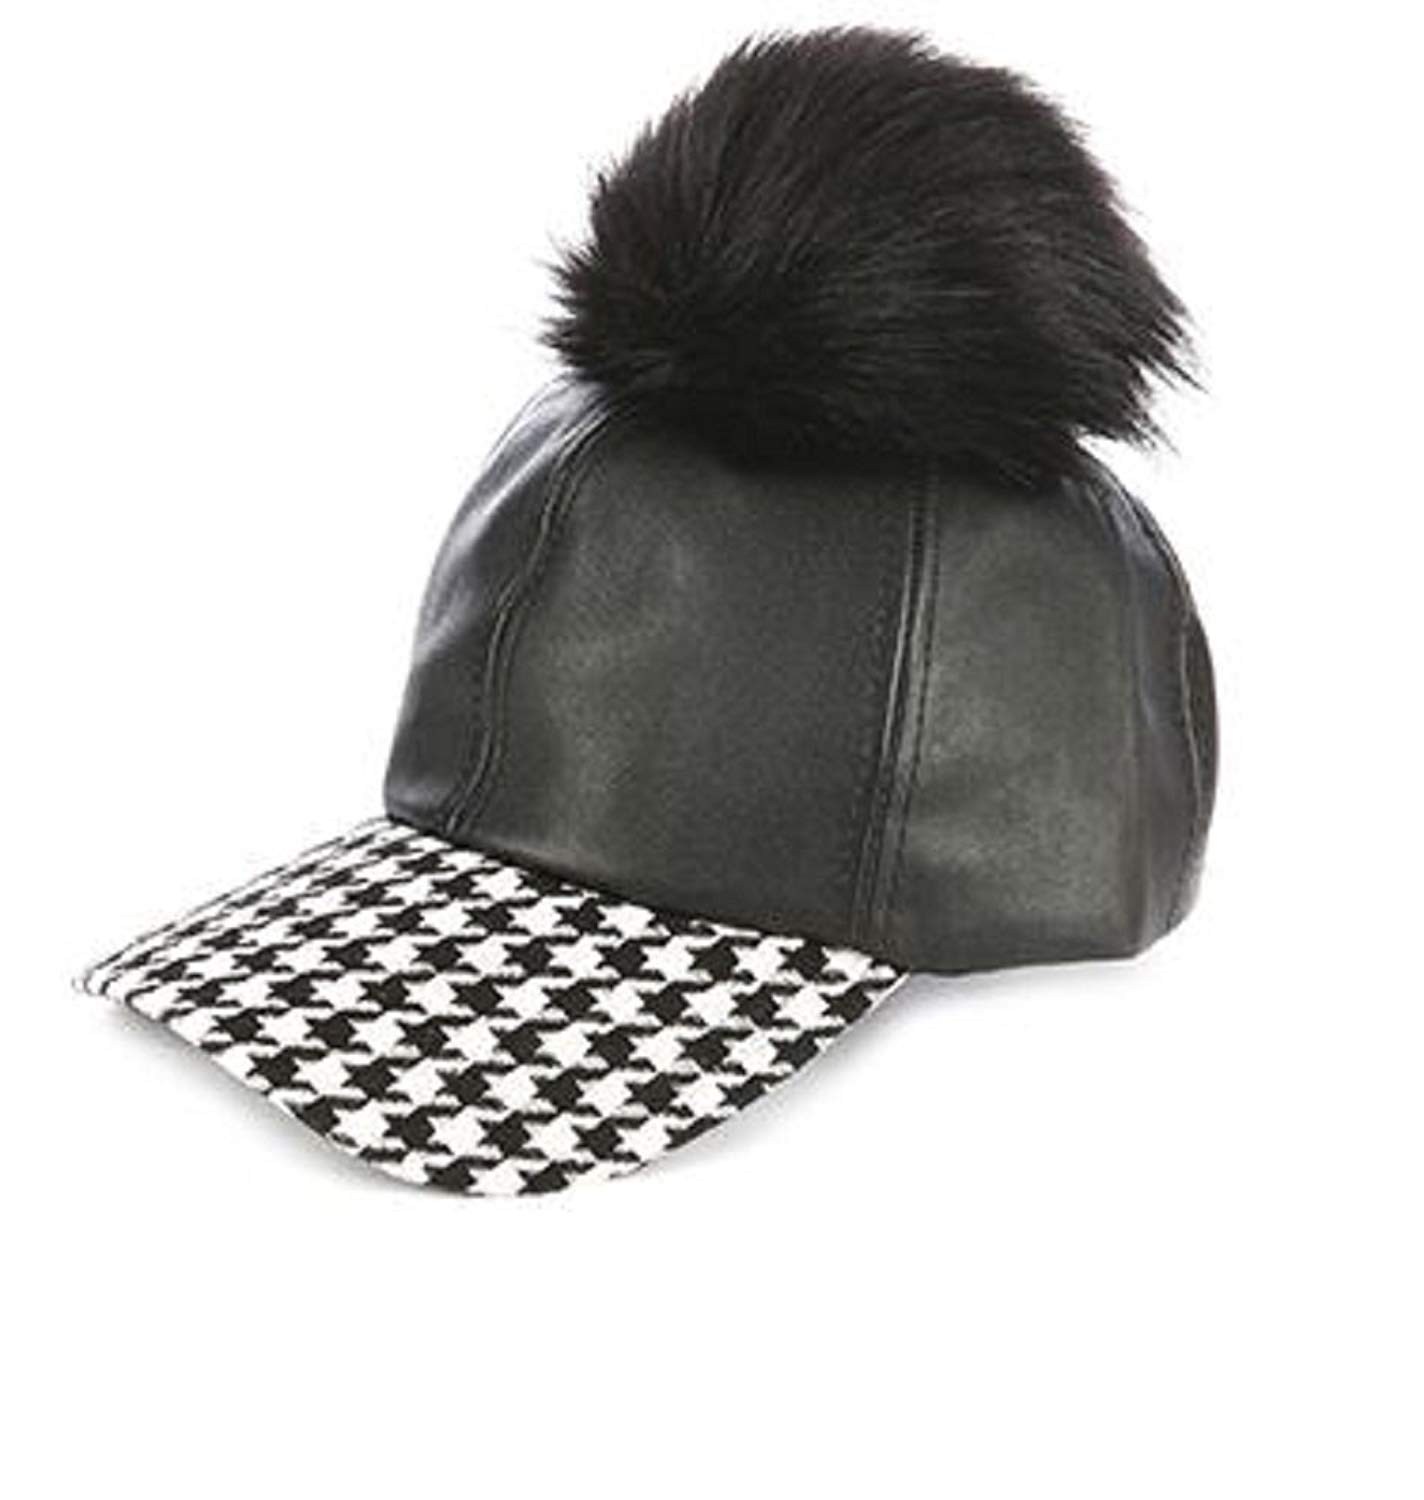 b095a8e3207 Get Quotations · RI001 Faux Fur Pom Pom Baseball Cap in Faux Suede Black  with Houndstooth Print Visor